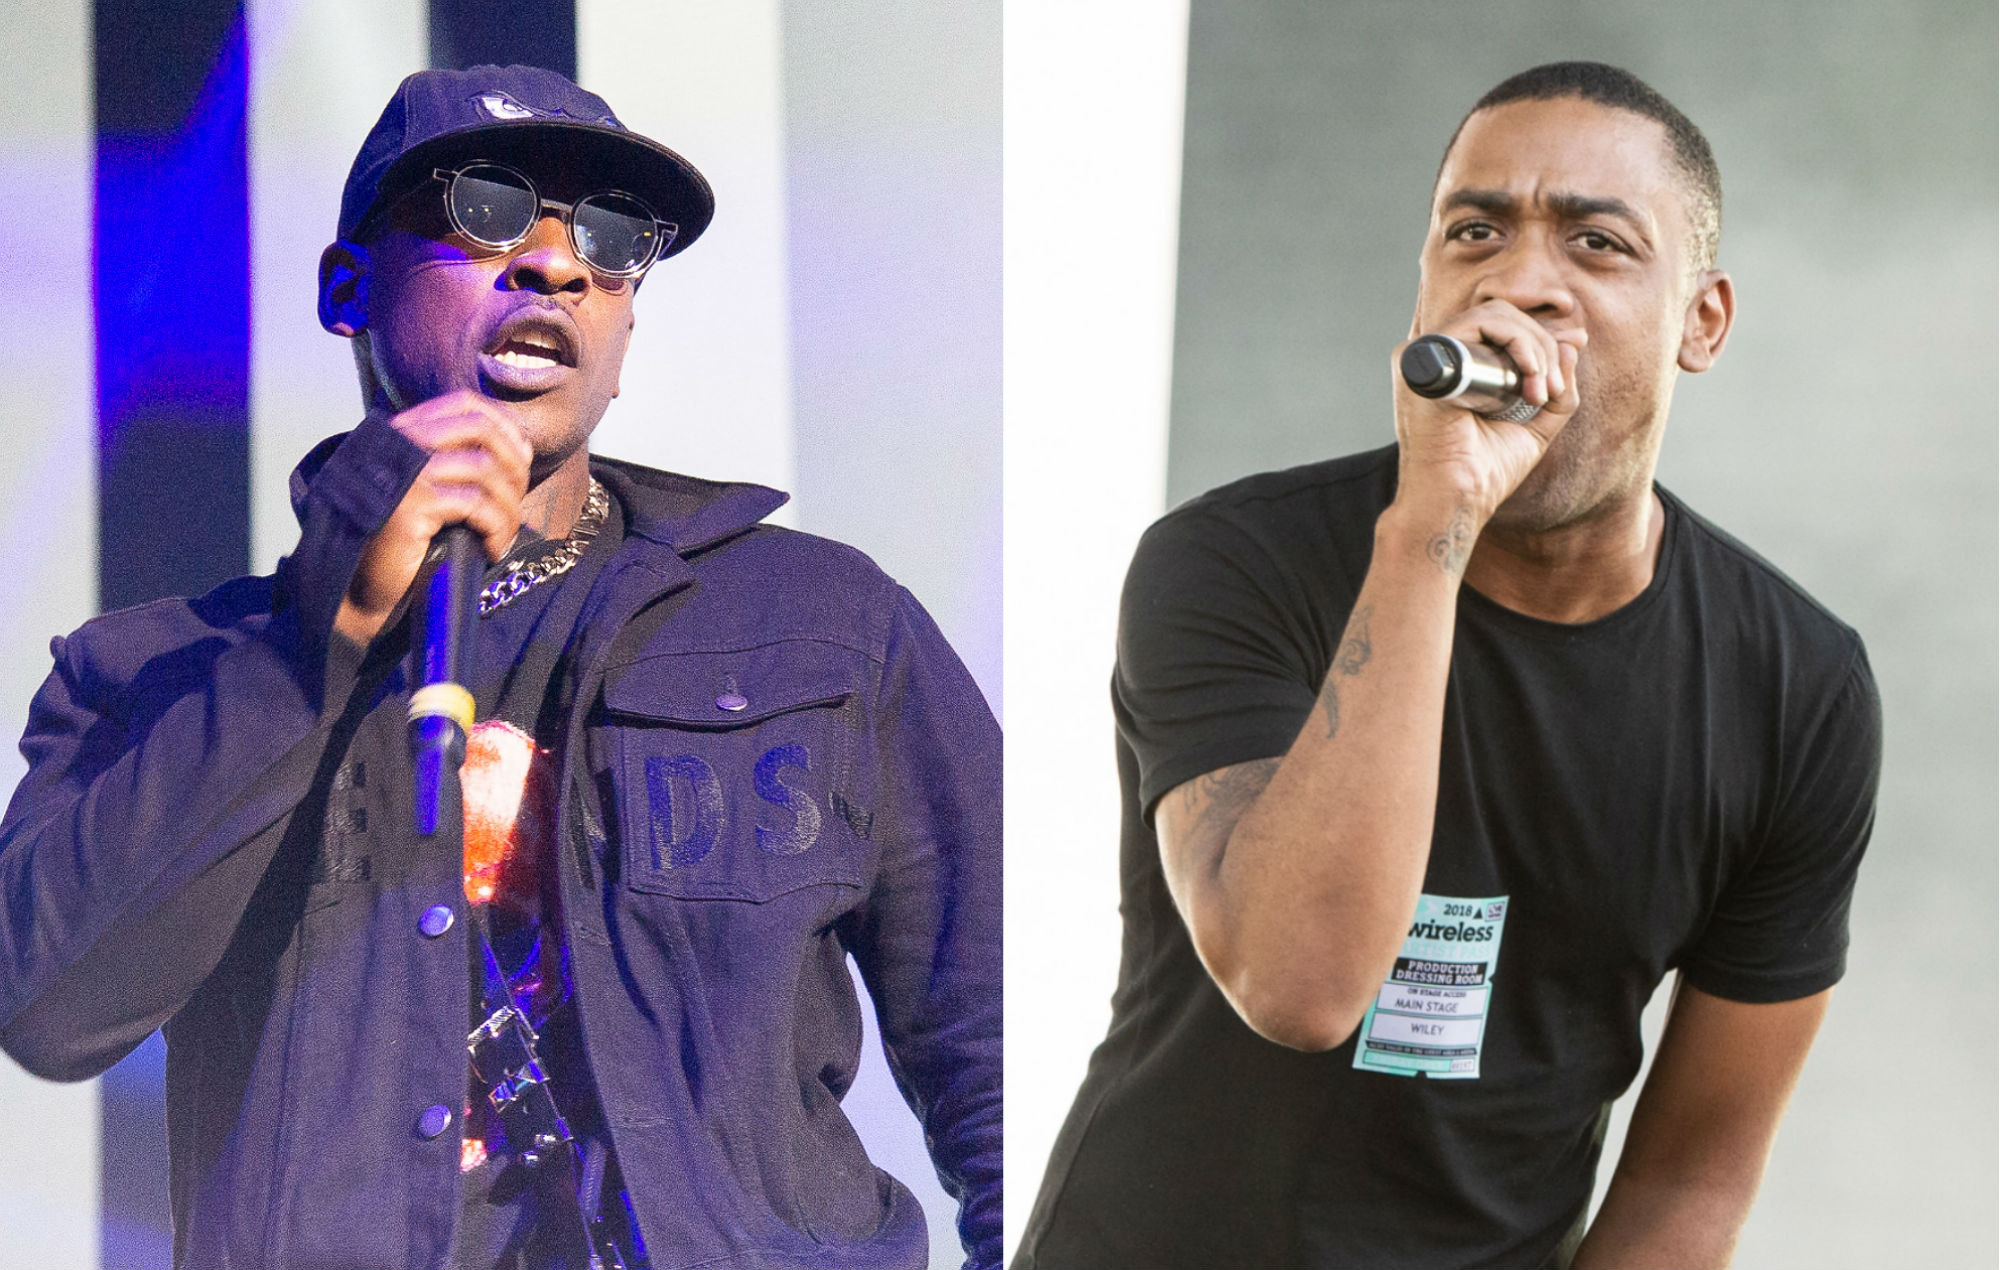 Wiley Just Dropped Another New Diss Track Taking Shots At Skepta